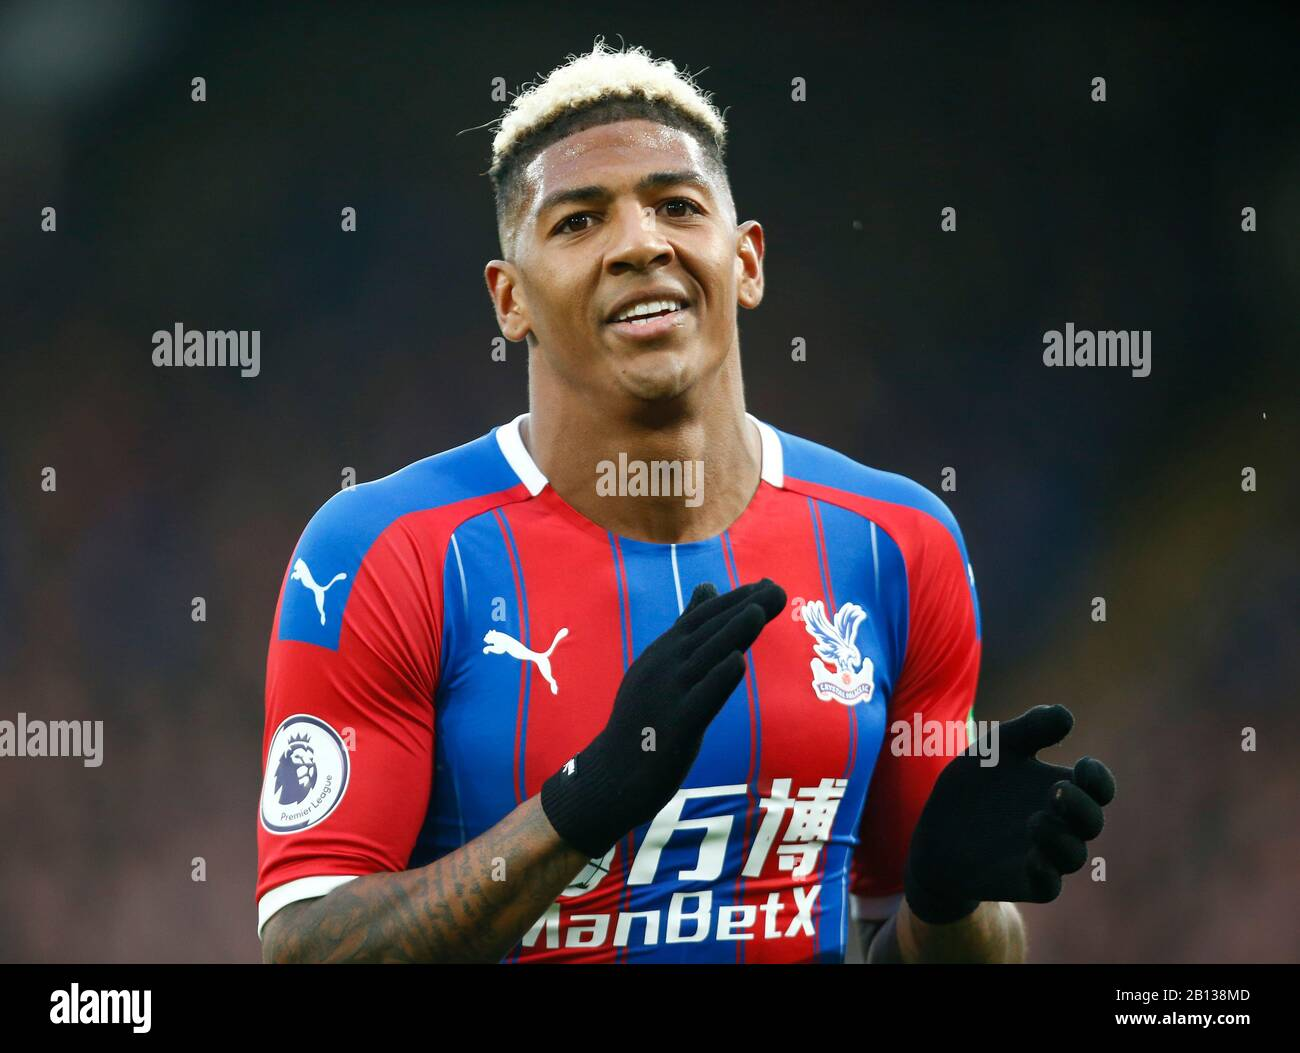 LONDON, UNITED KINGDOM. FEBRUARY 22 Crystal Palace's Patrick van Aanholt during English Premier League between Crystal Palace and Newcastle United at Selhurst Park Stadium, London, England on 22 February 2020 Credit: Action Foto Sport/Alamy Live News Stock Photo